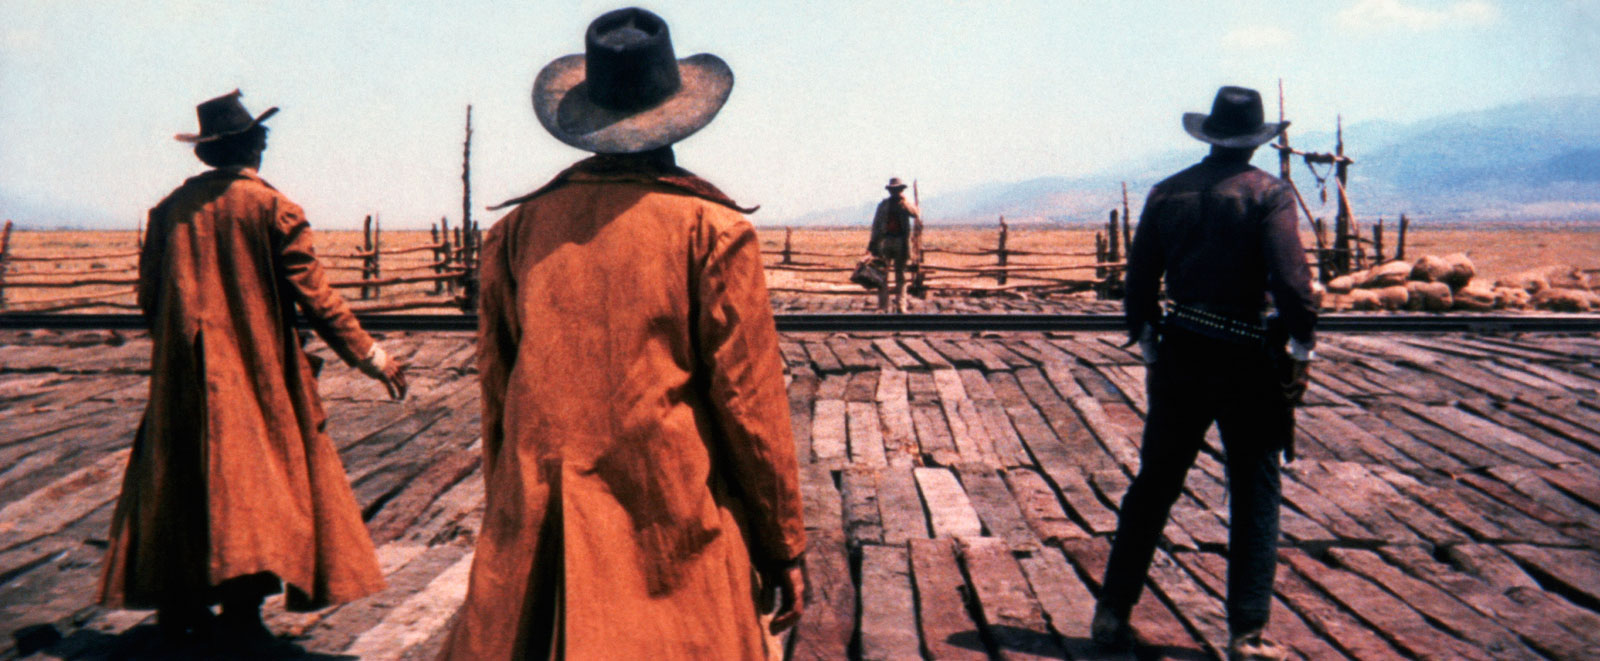 best spaghetti westerns